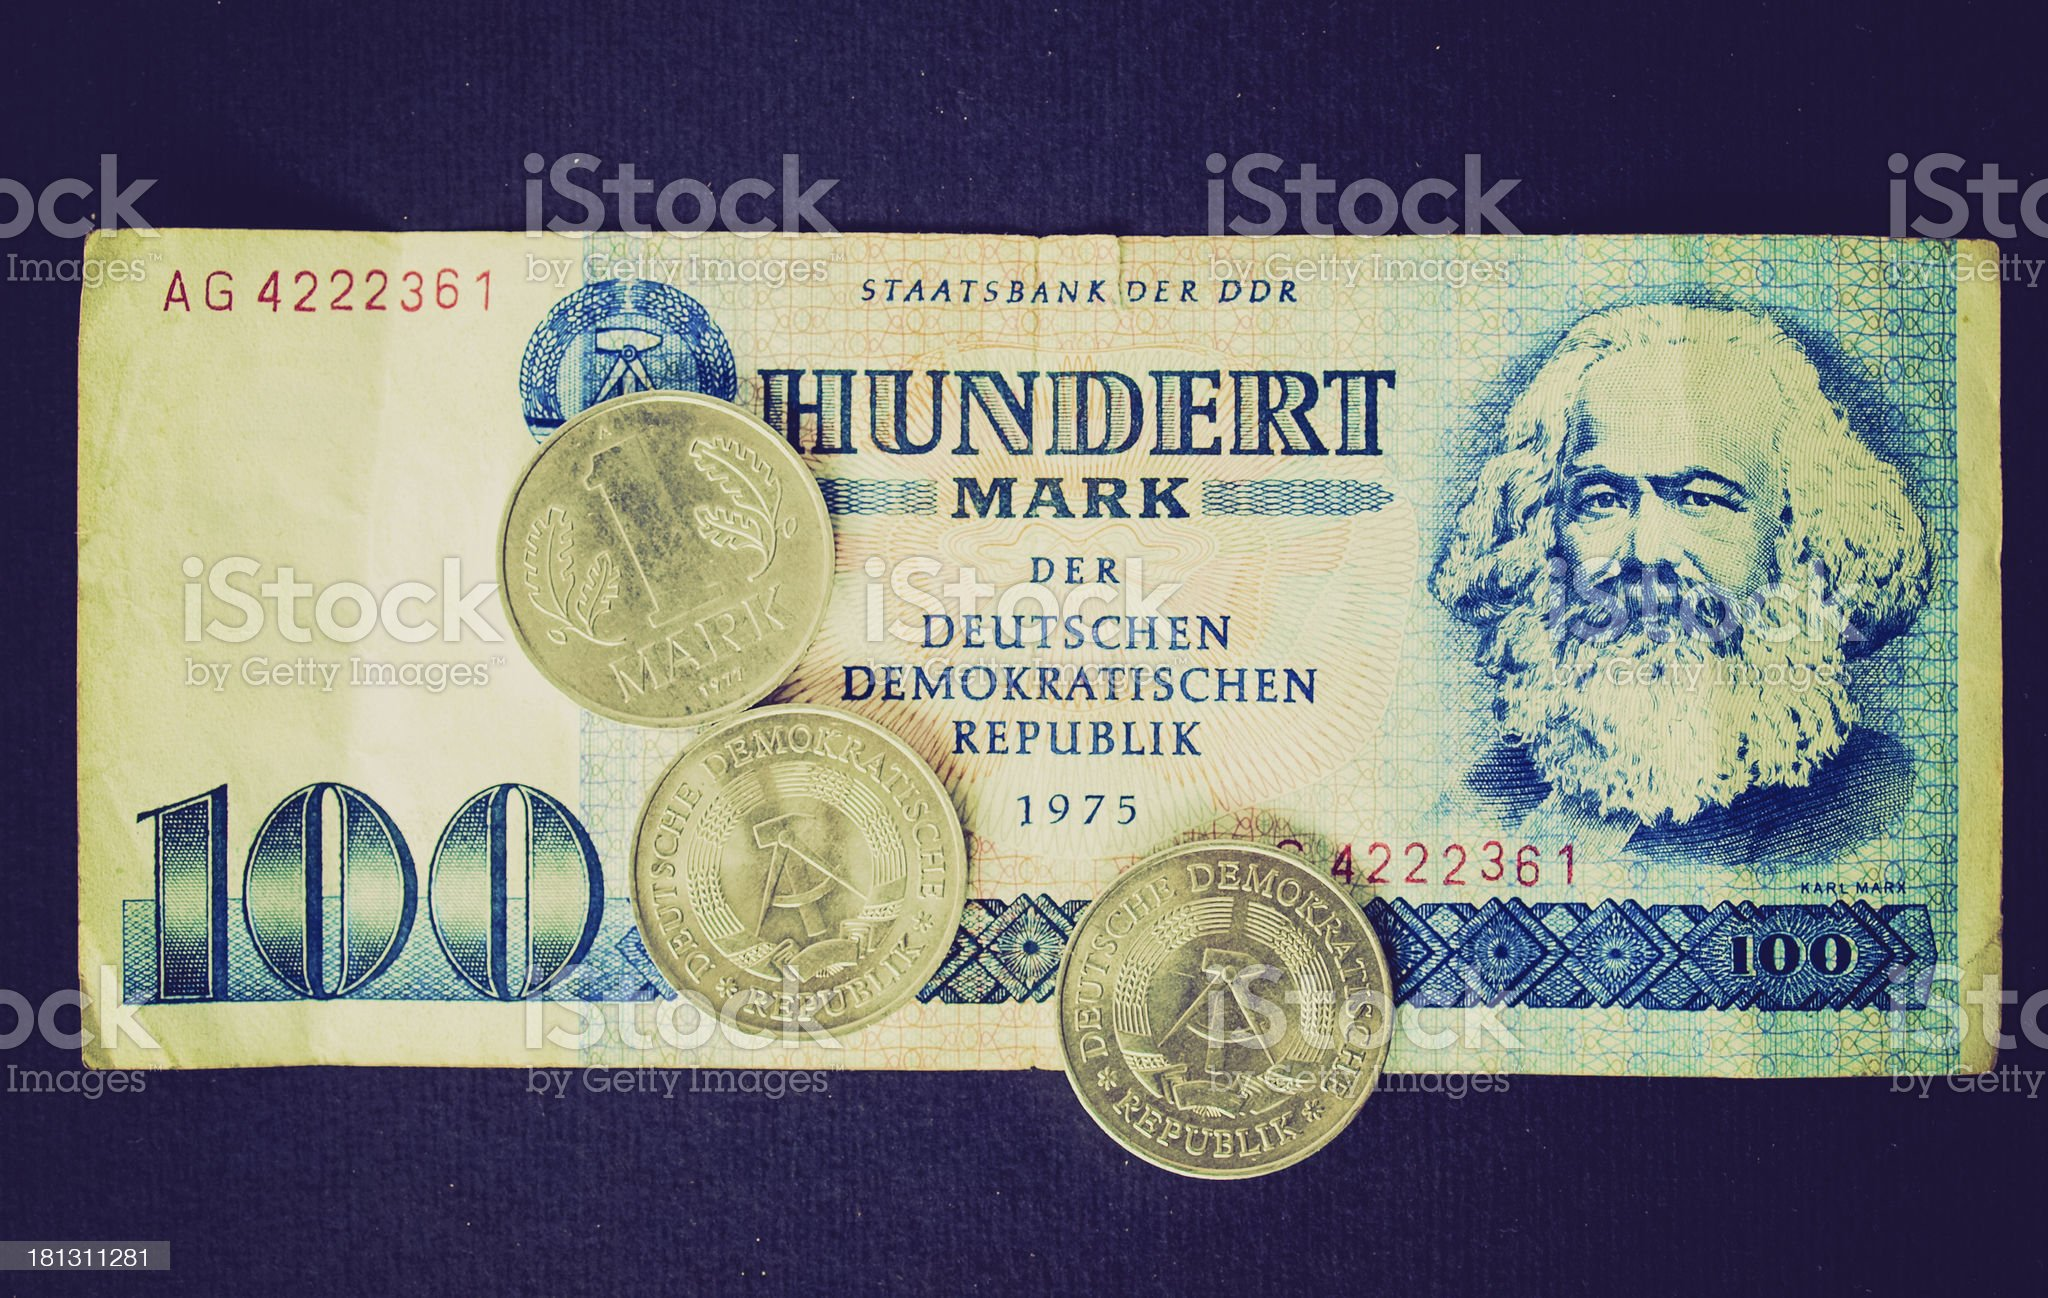 Retro look DDR banknote royalty-free stock photo